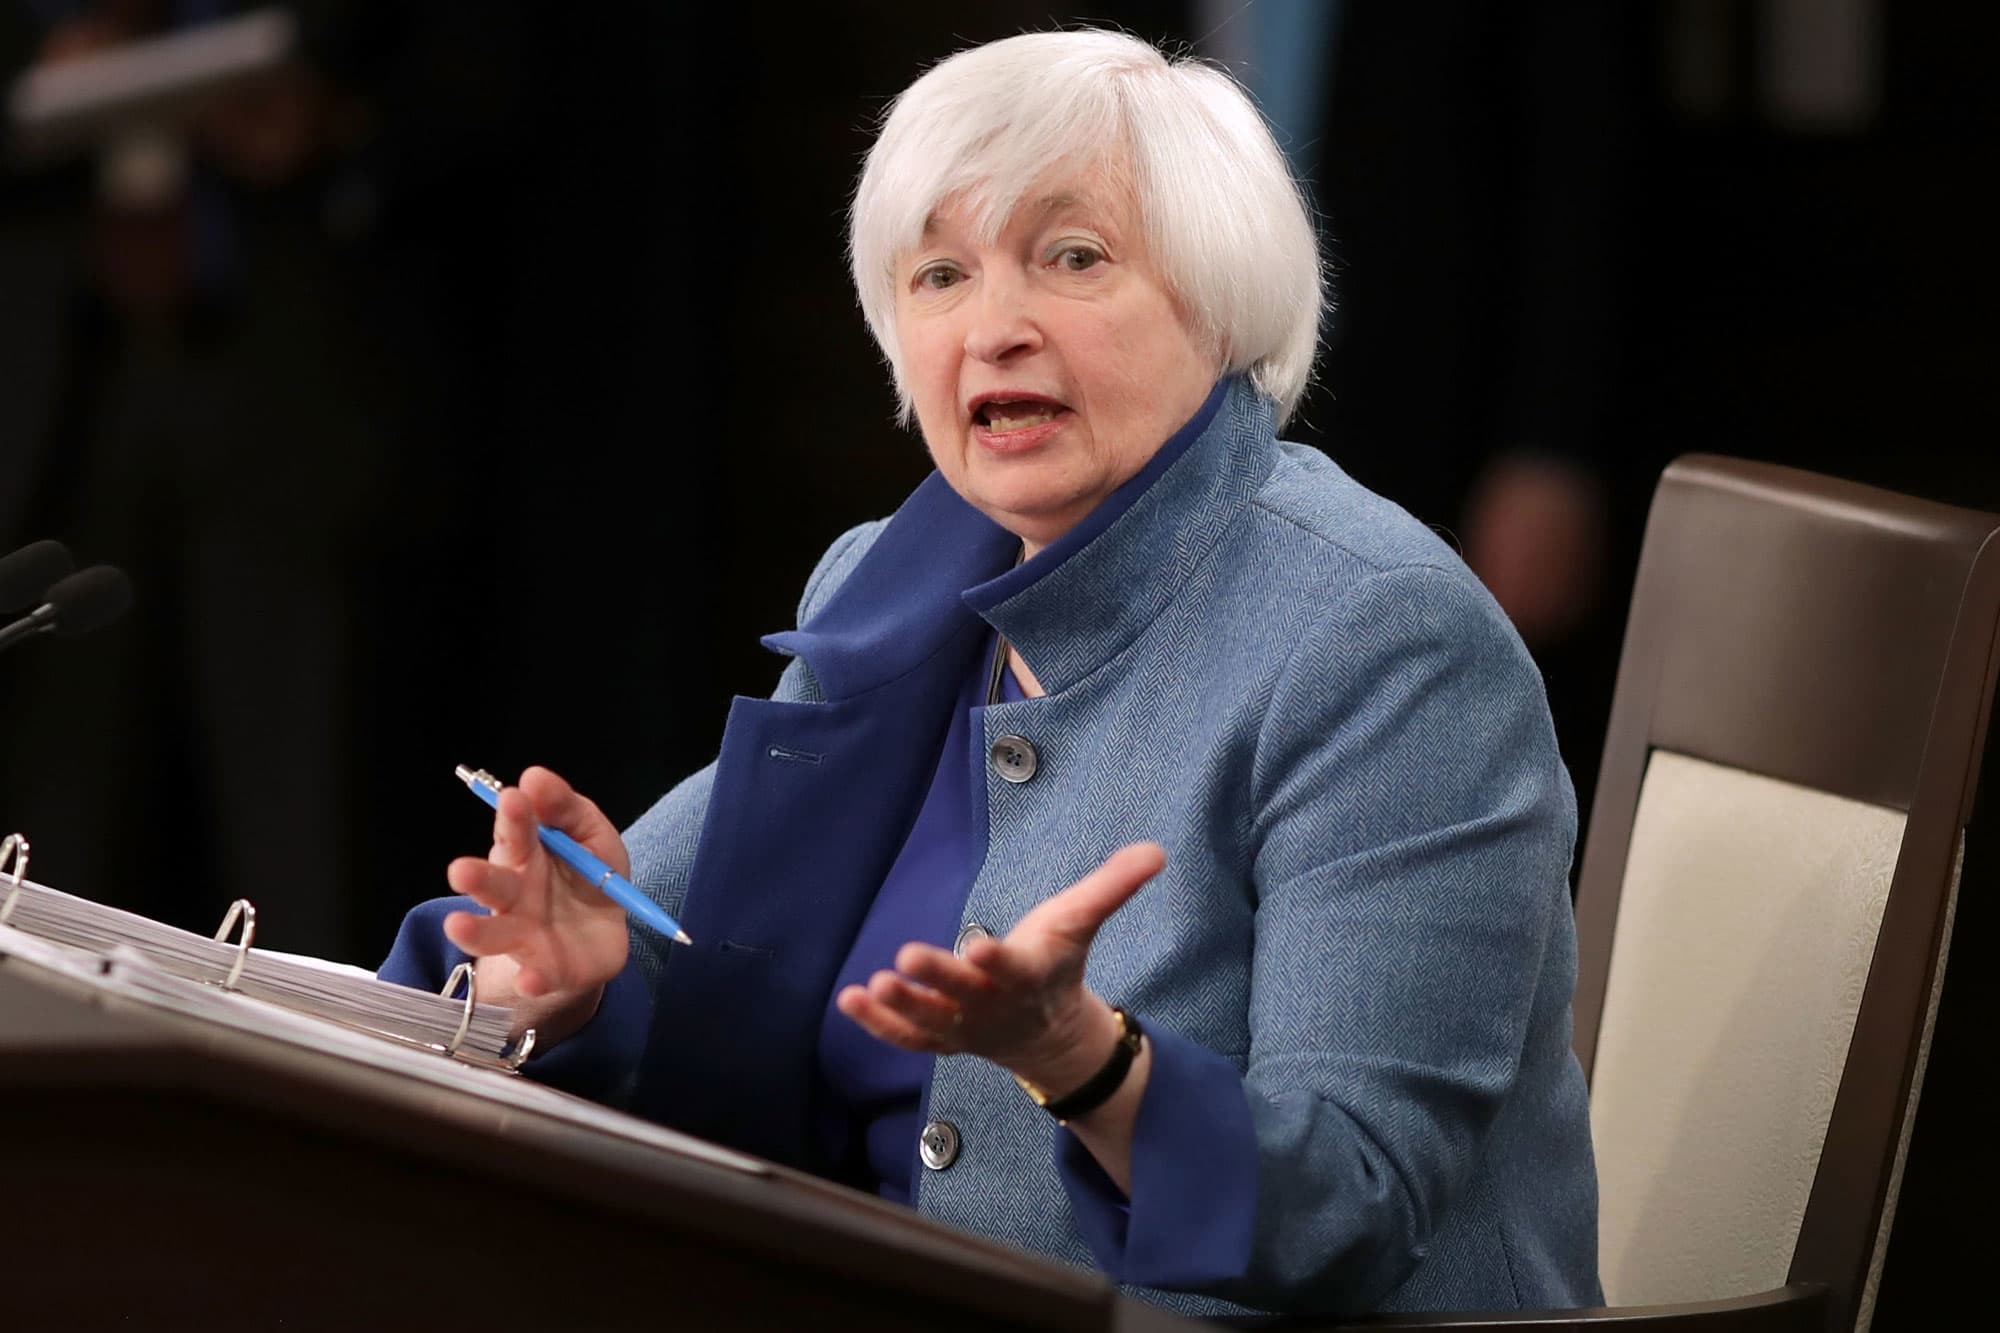 Janet Yellen Changes Tone on Cryptocurrency Assets